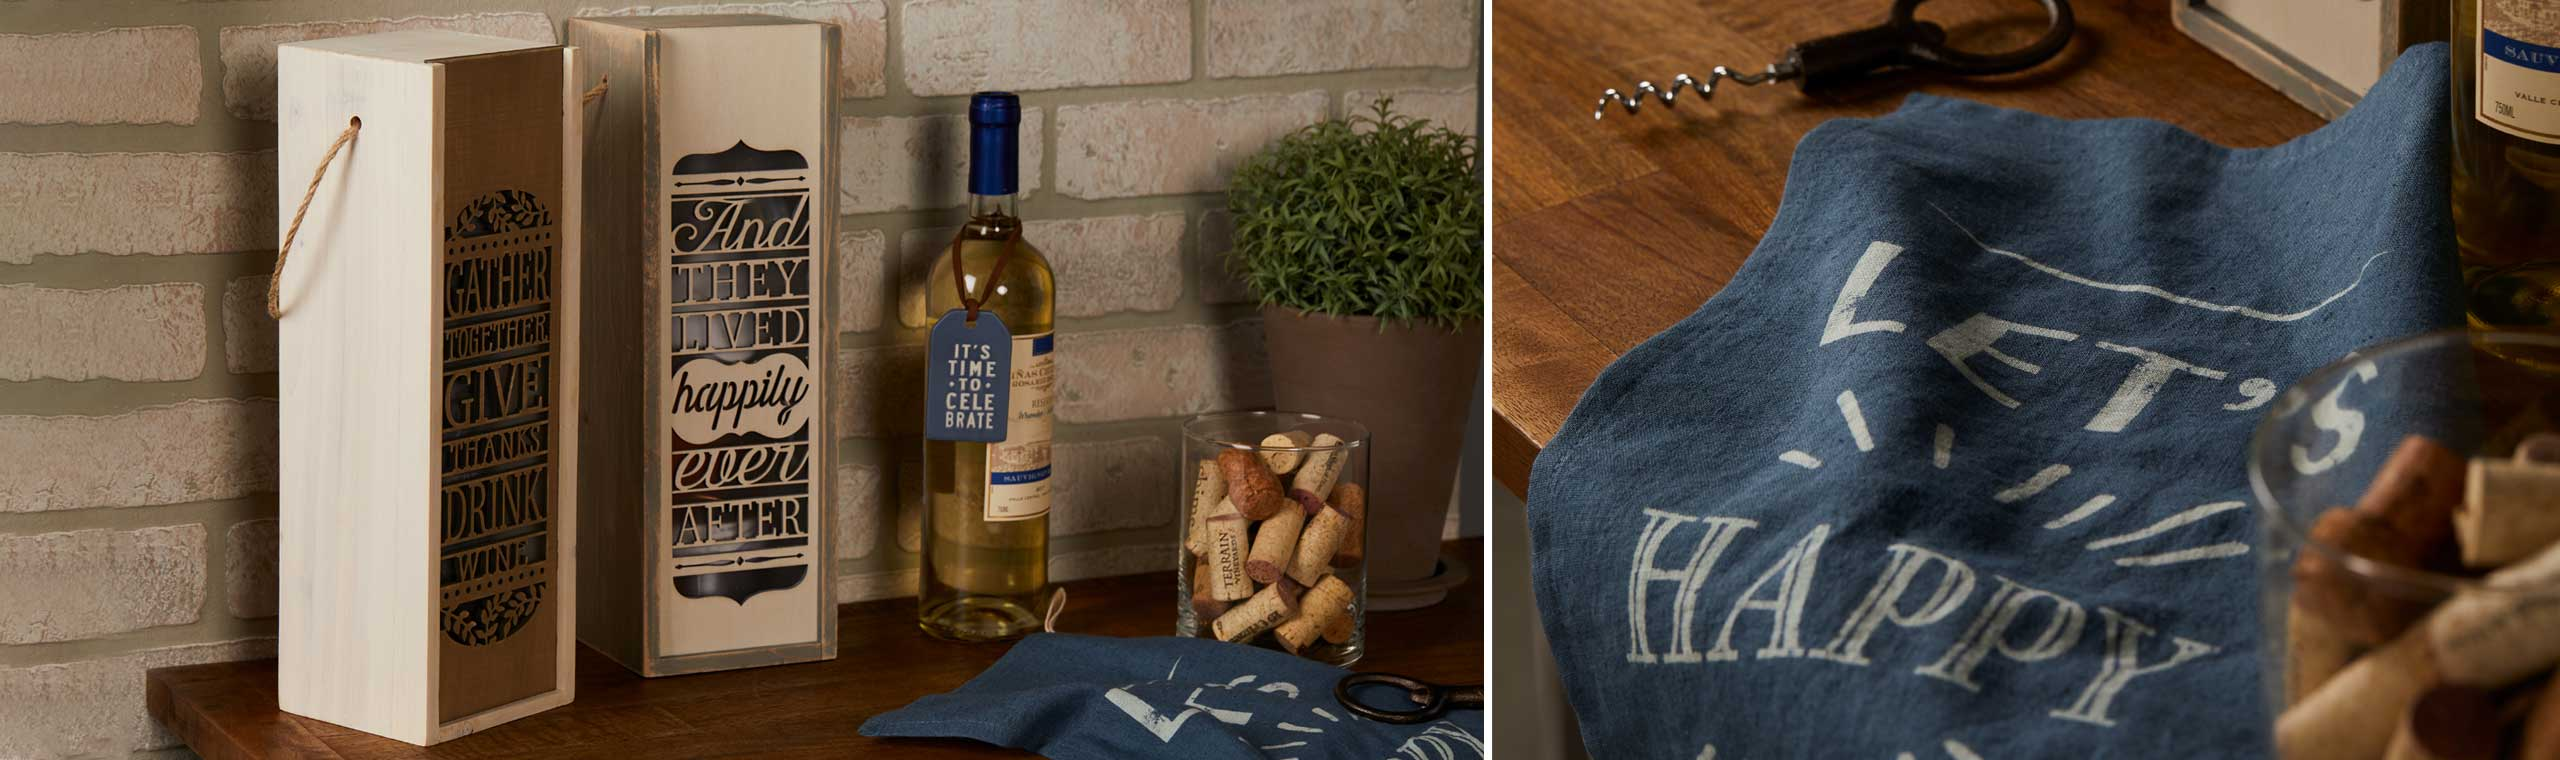 wooden wine cases and a bottle of wine setting on a table and another photo of a blue appron with a quote about being happy printed on it